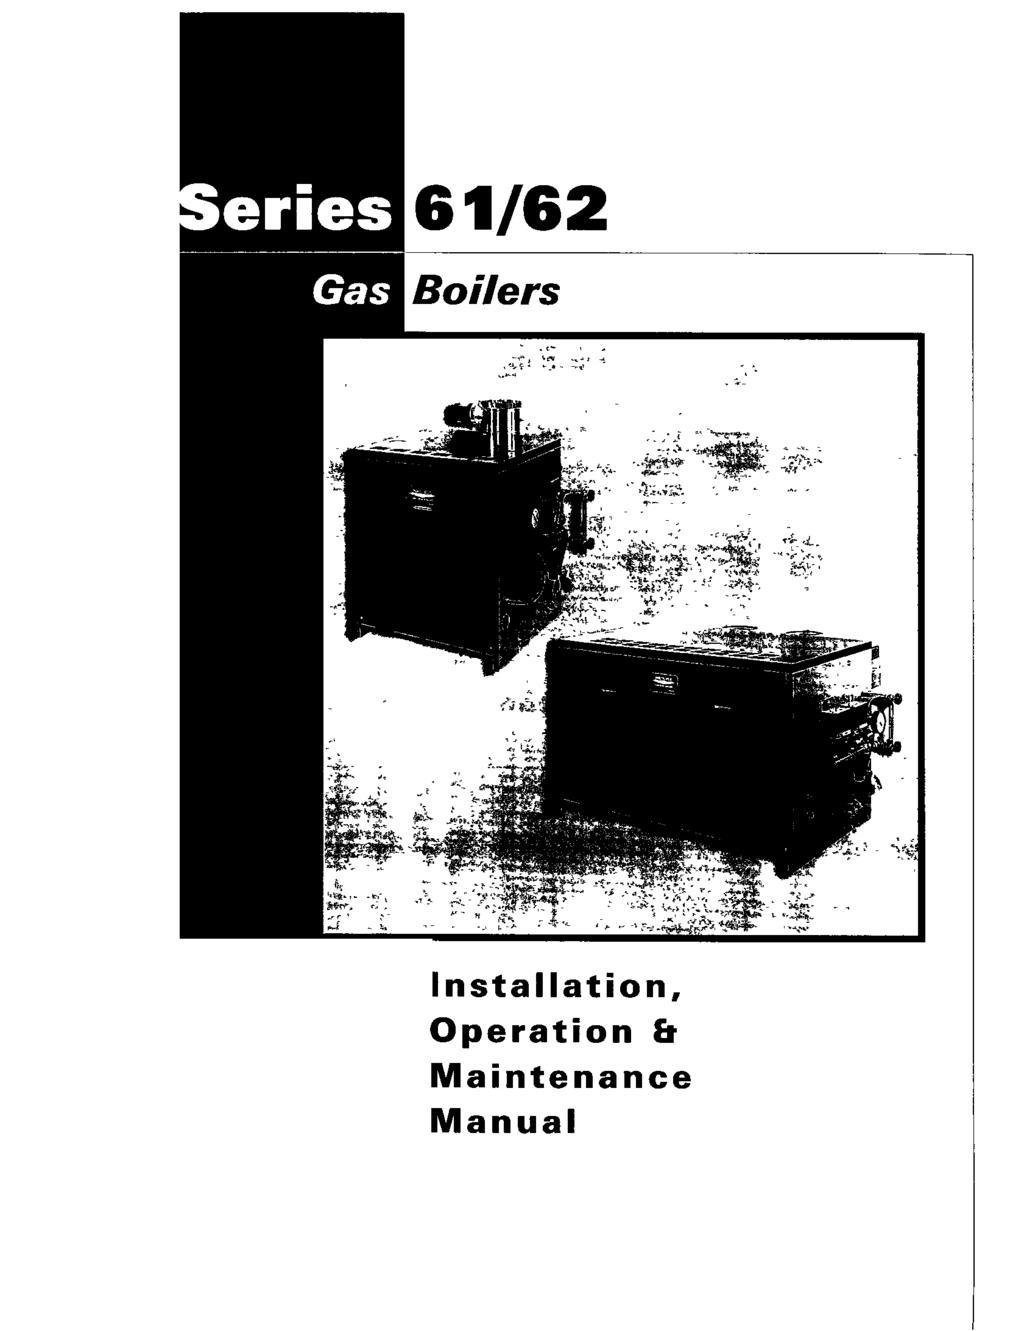 hight resolution of 61 62 boilers installation